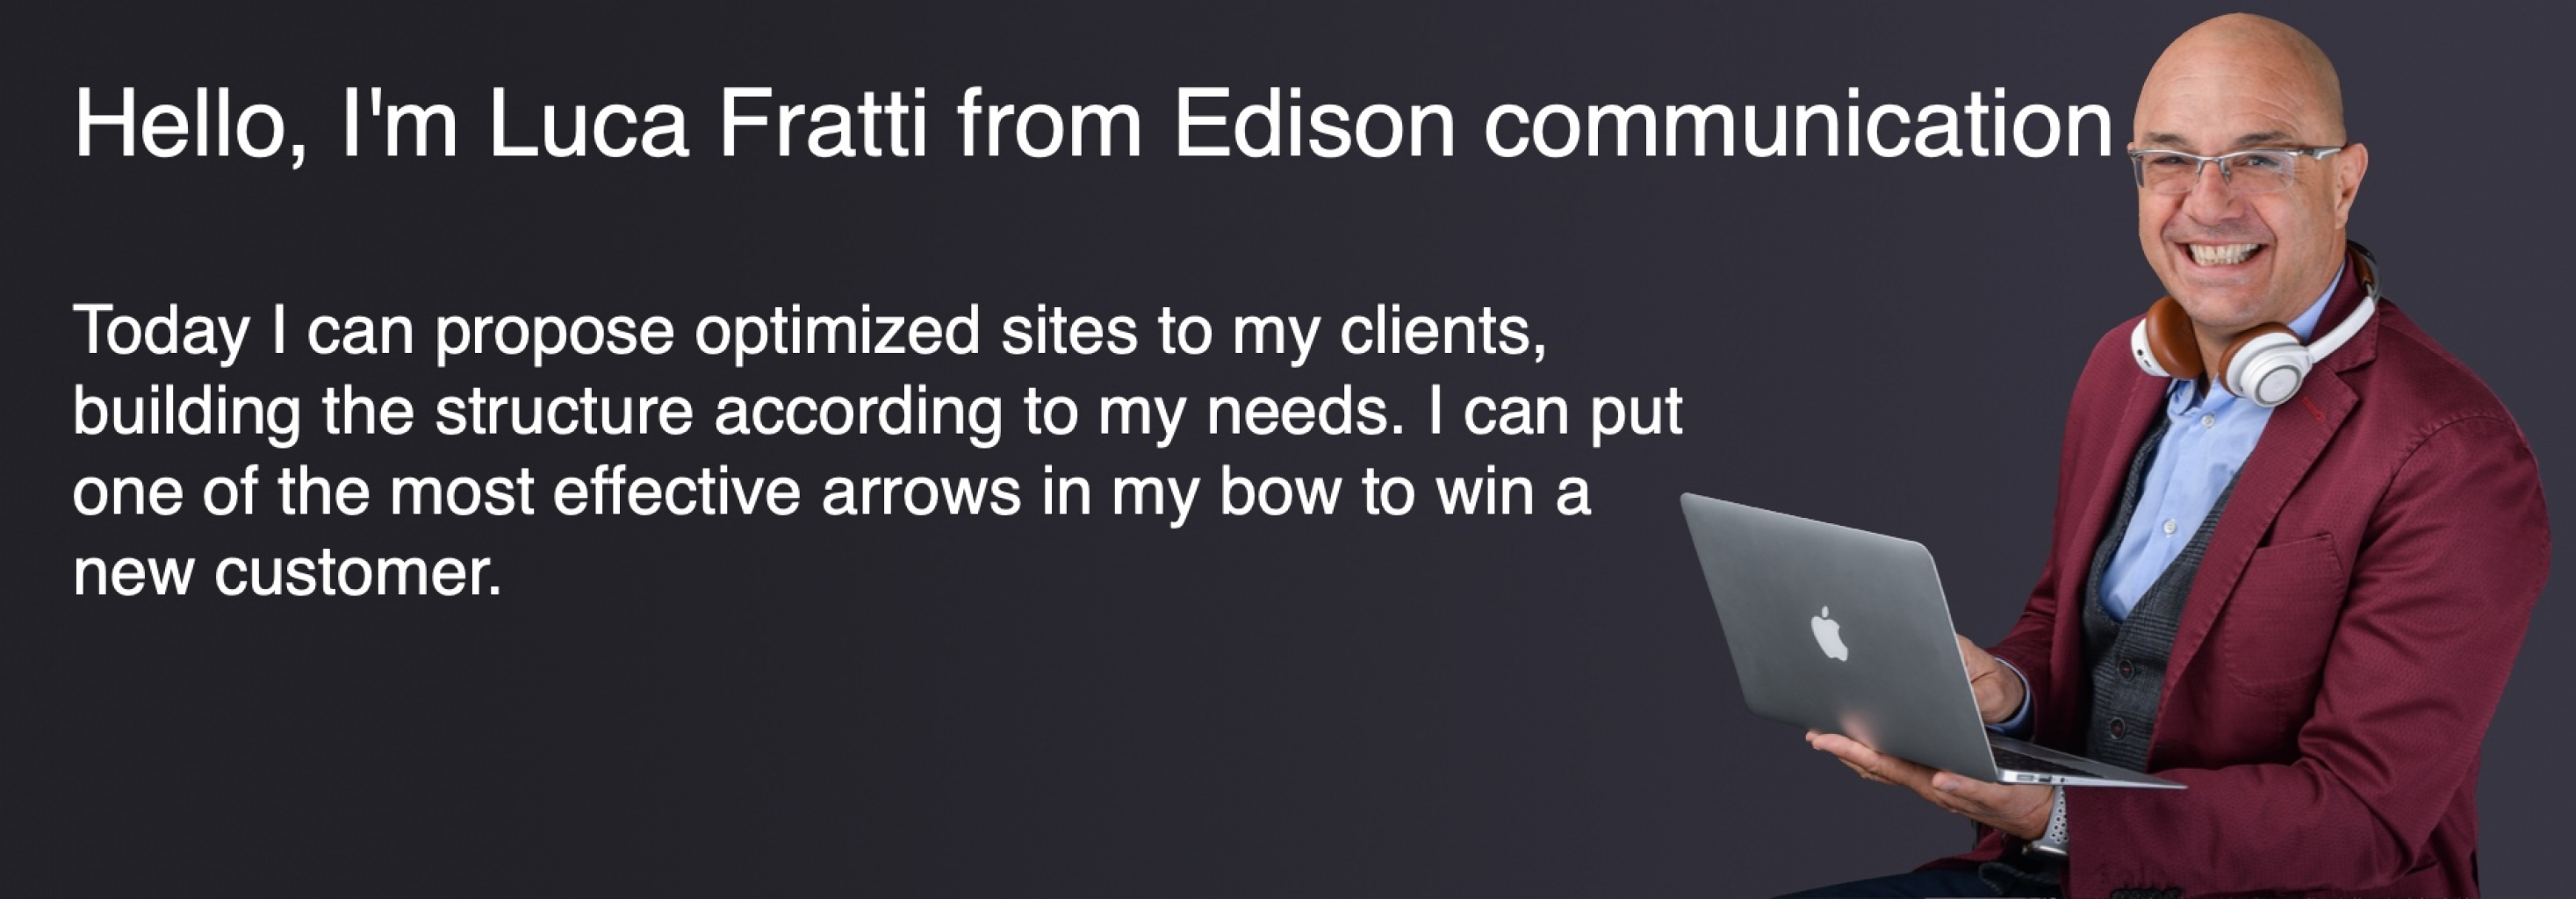 Luca Fratti - Edison communication, Italy